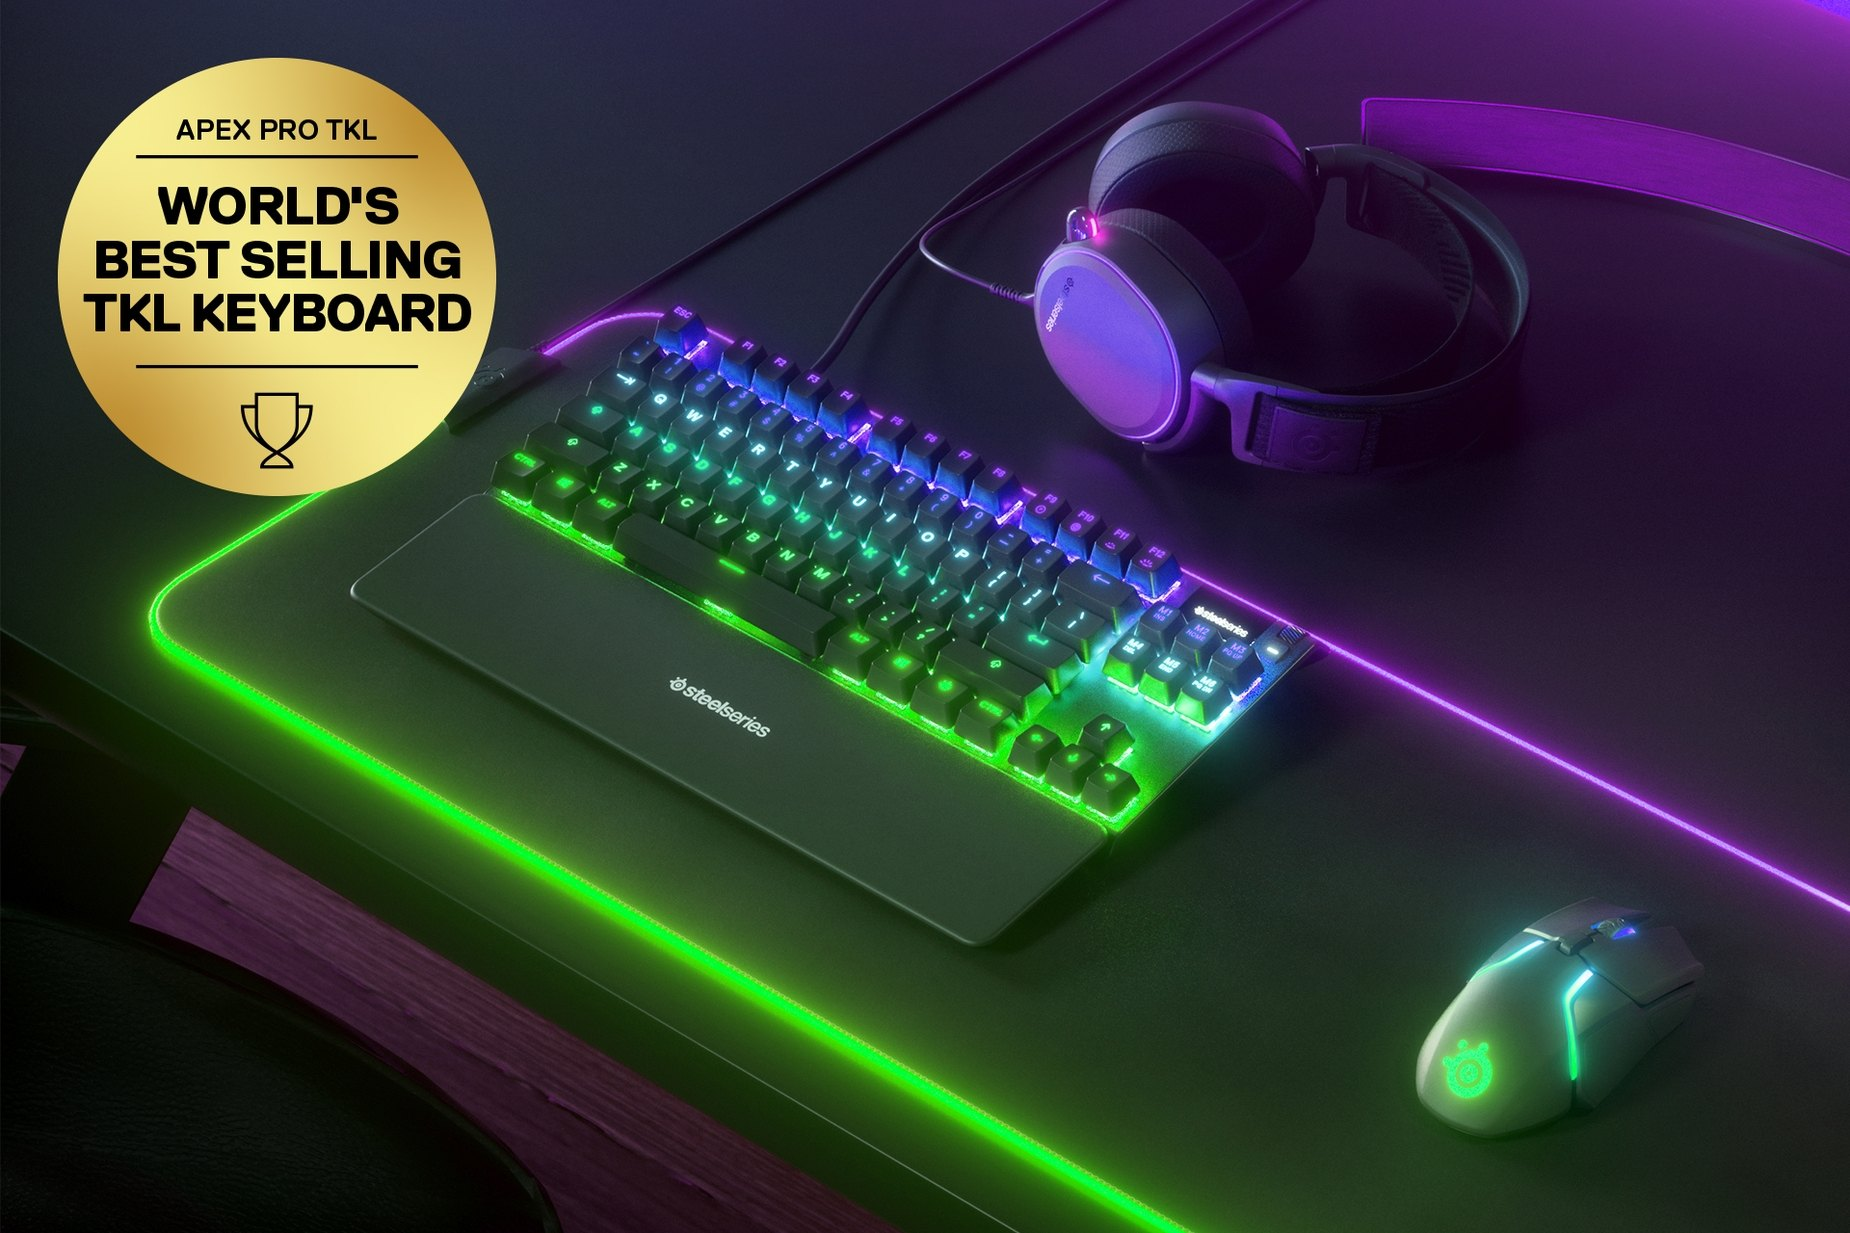 "German - Apex Pro TKL gaming keyboard on a desk with a gaming mouse, both on top of a large mousepad and a SteelSeries gaming headset next to them. Keyboard has gold award floating next to it with text ""World's best selling TKL Keyboard""."